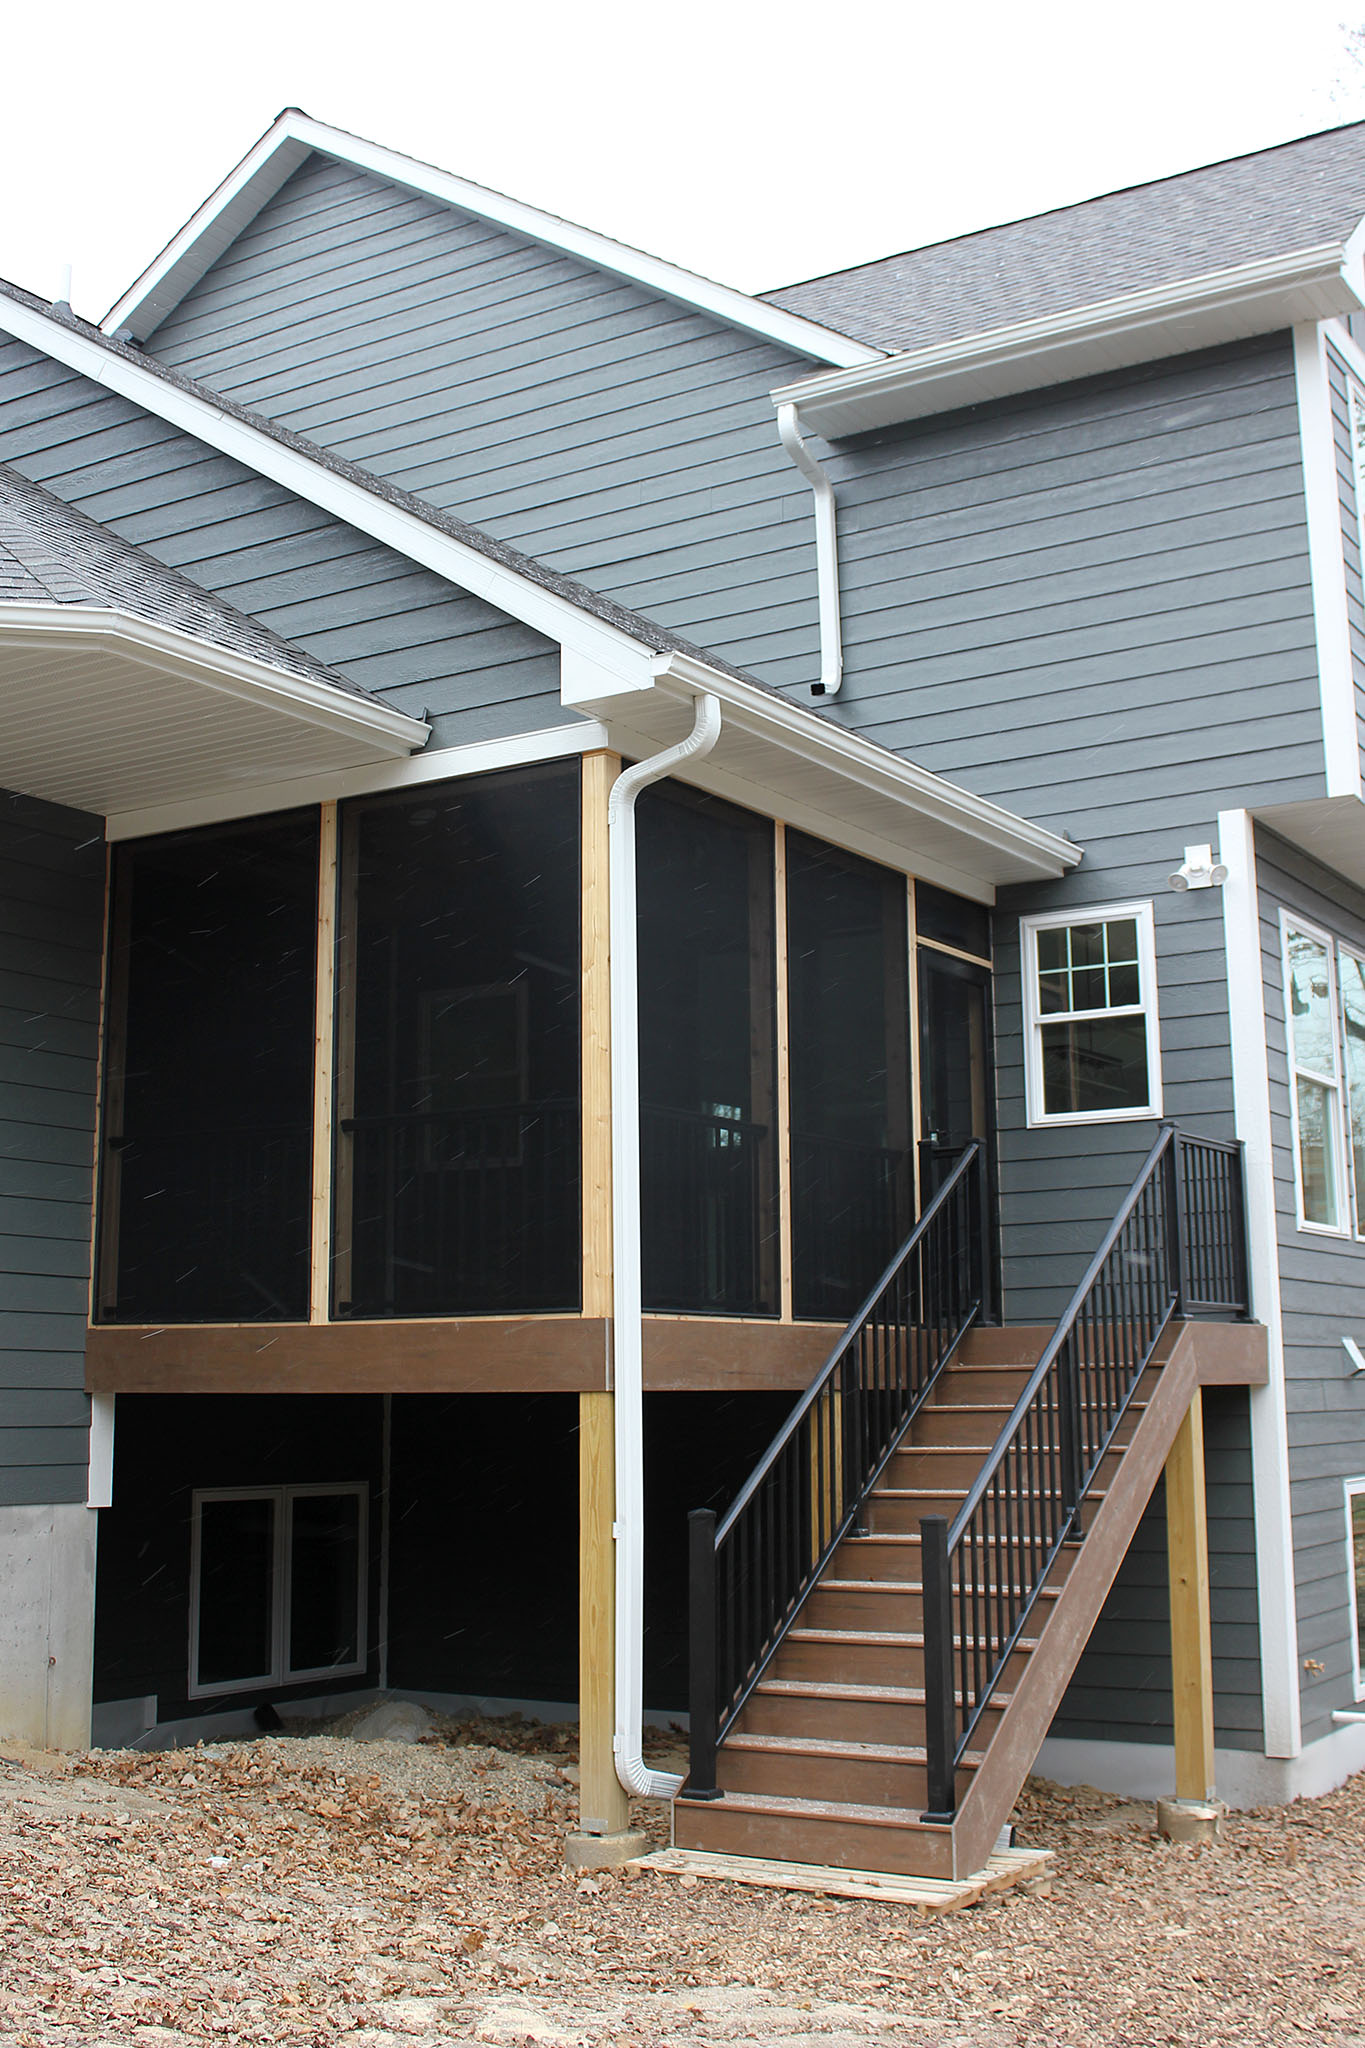 Screen porch with TimberTech composite decking with metal balusters and railing, stairway to ground elevation